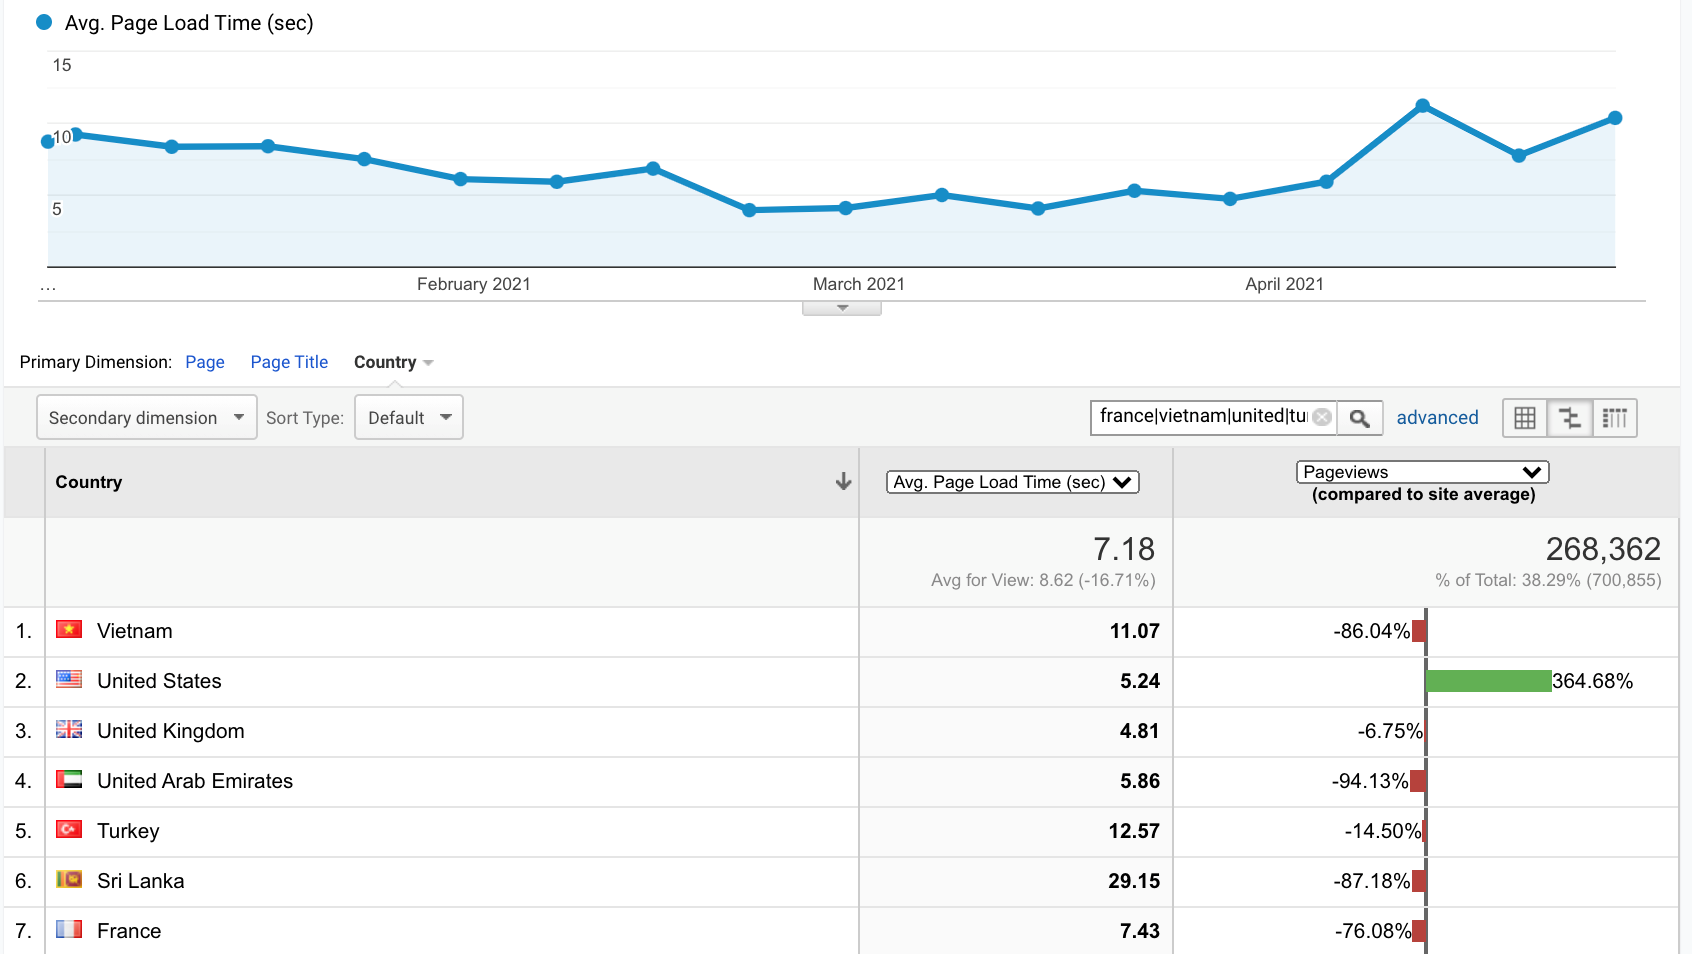 Avg Page Load Time data from Google Analytics